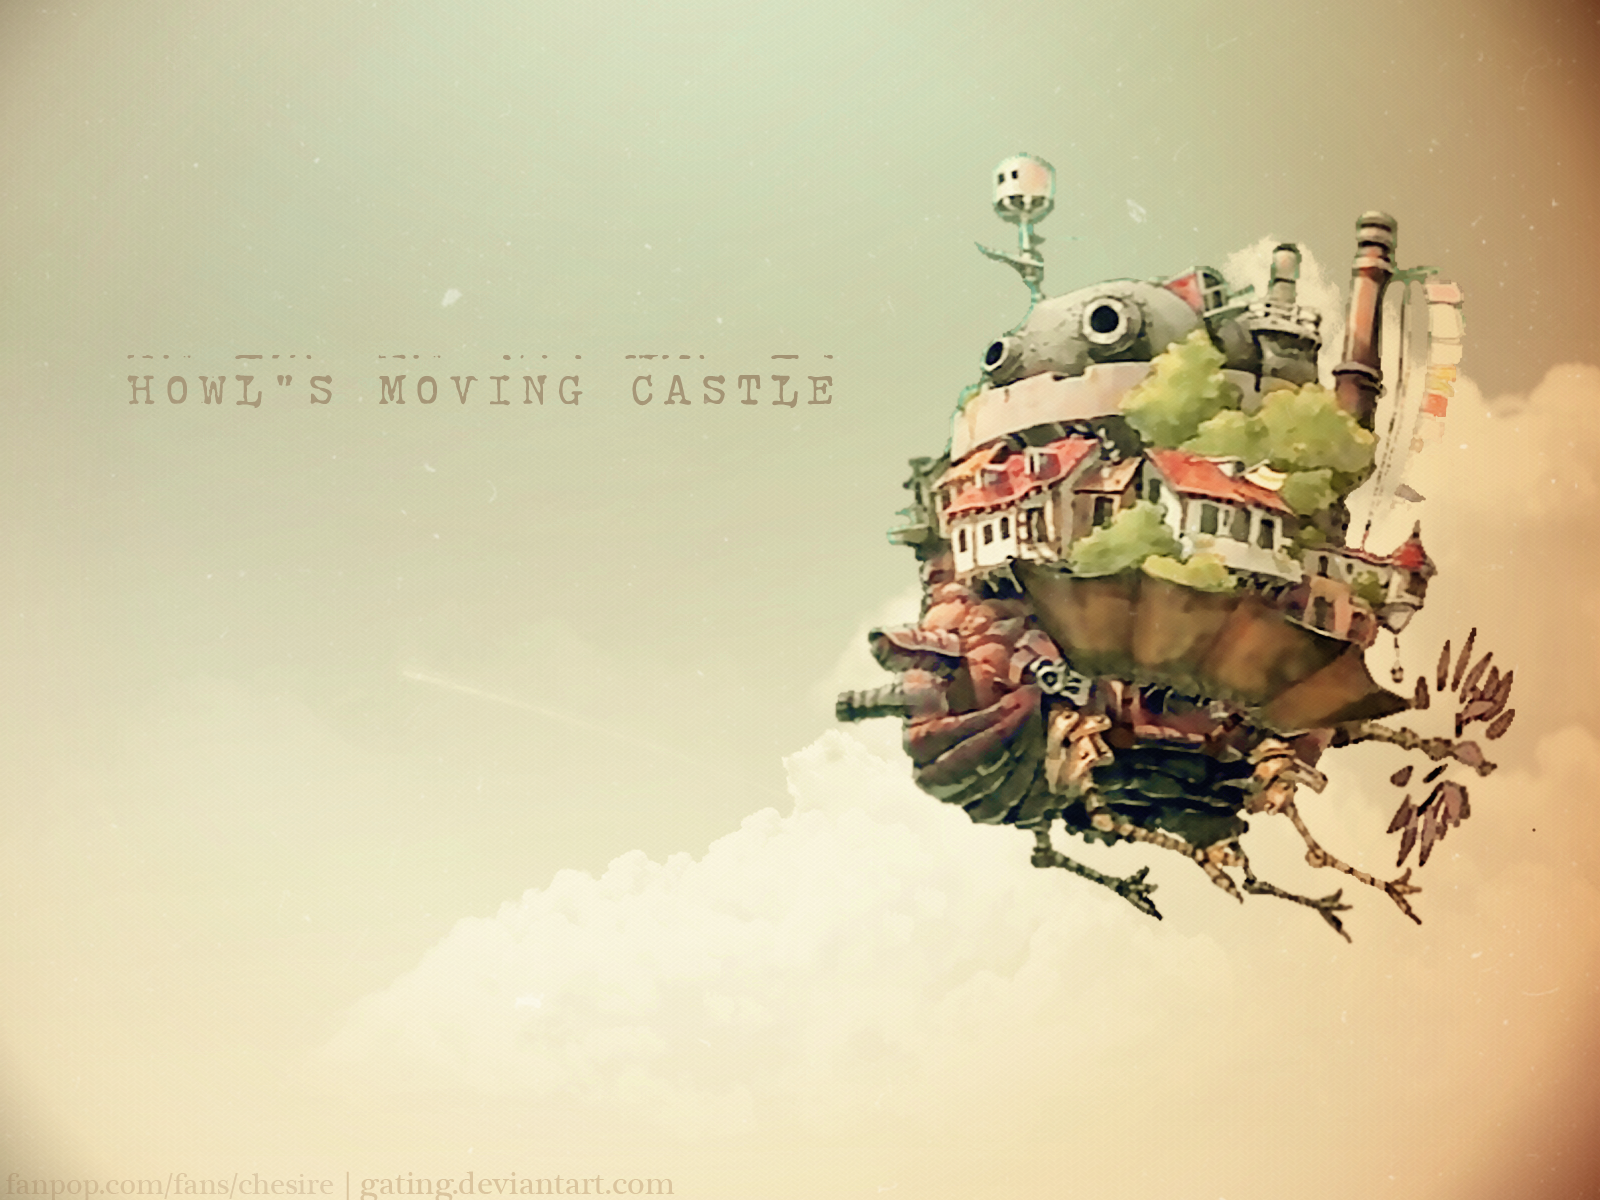 31 Howls Moving Castle Wallpapers